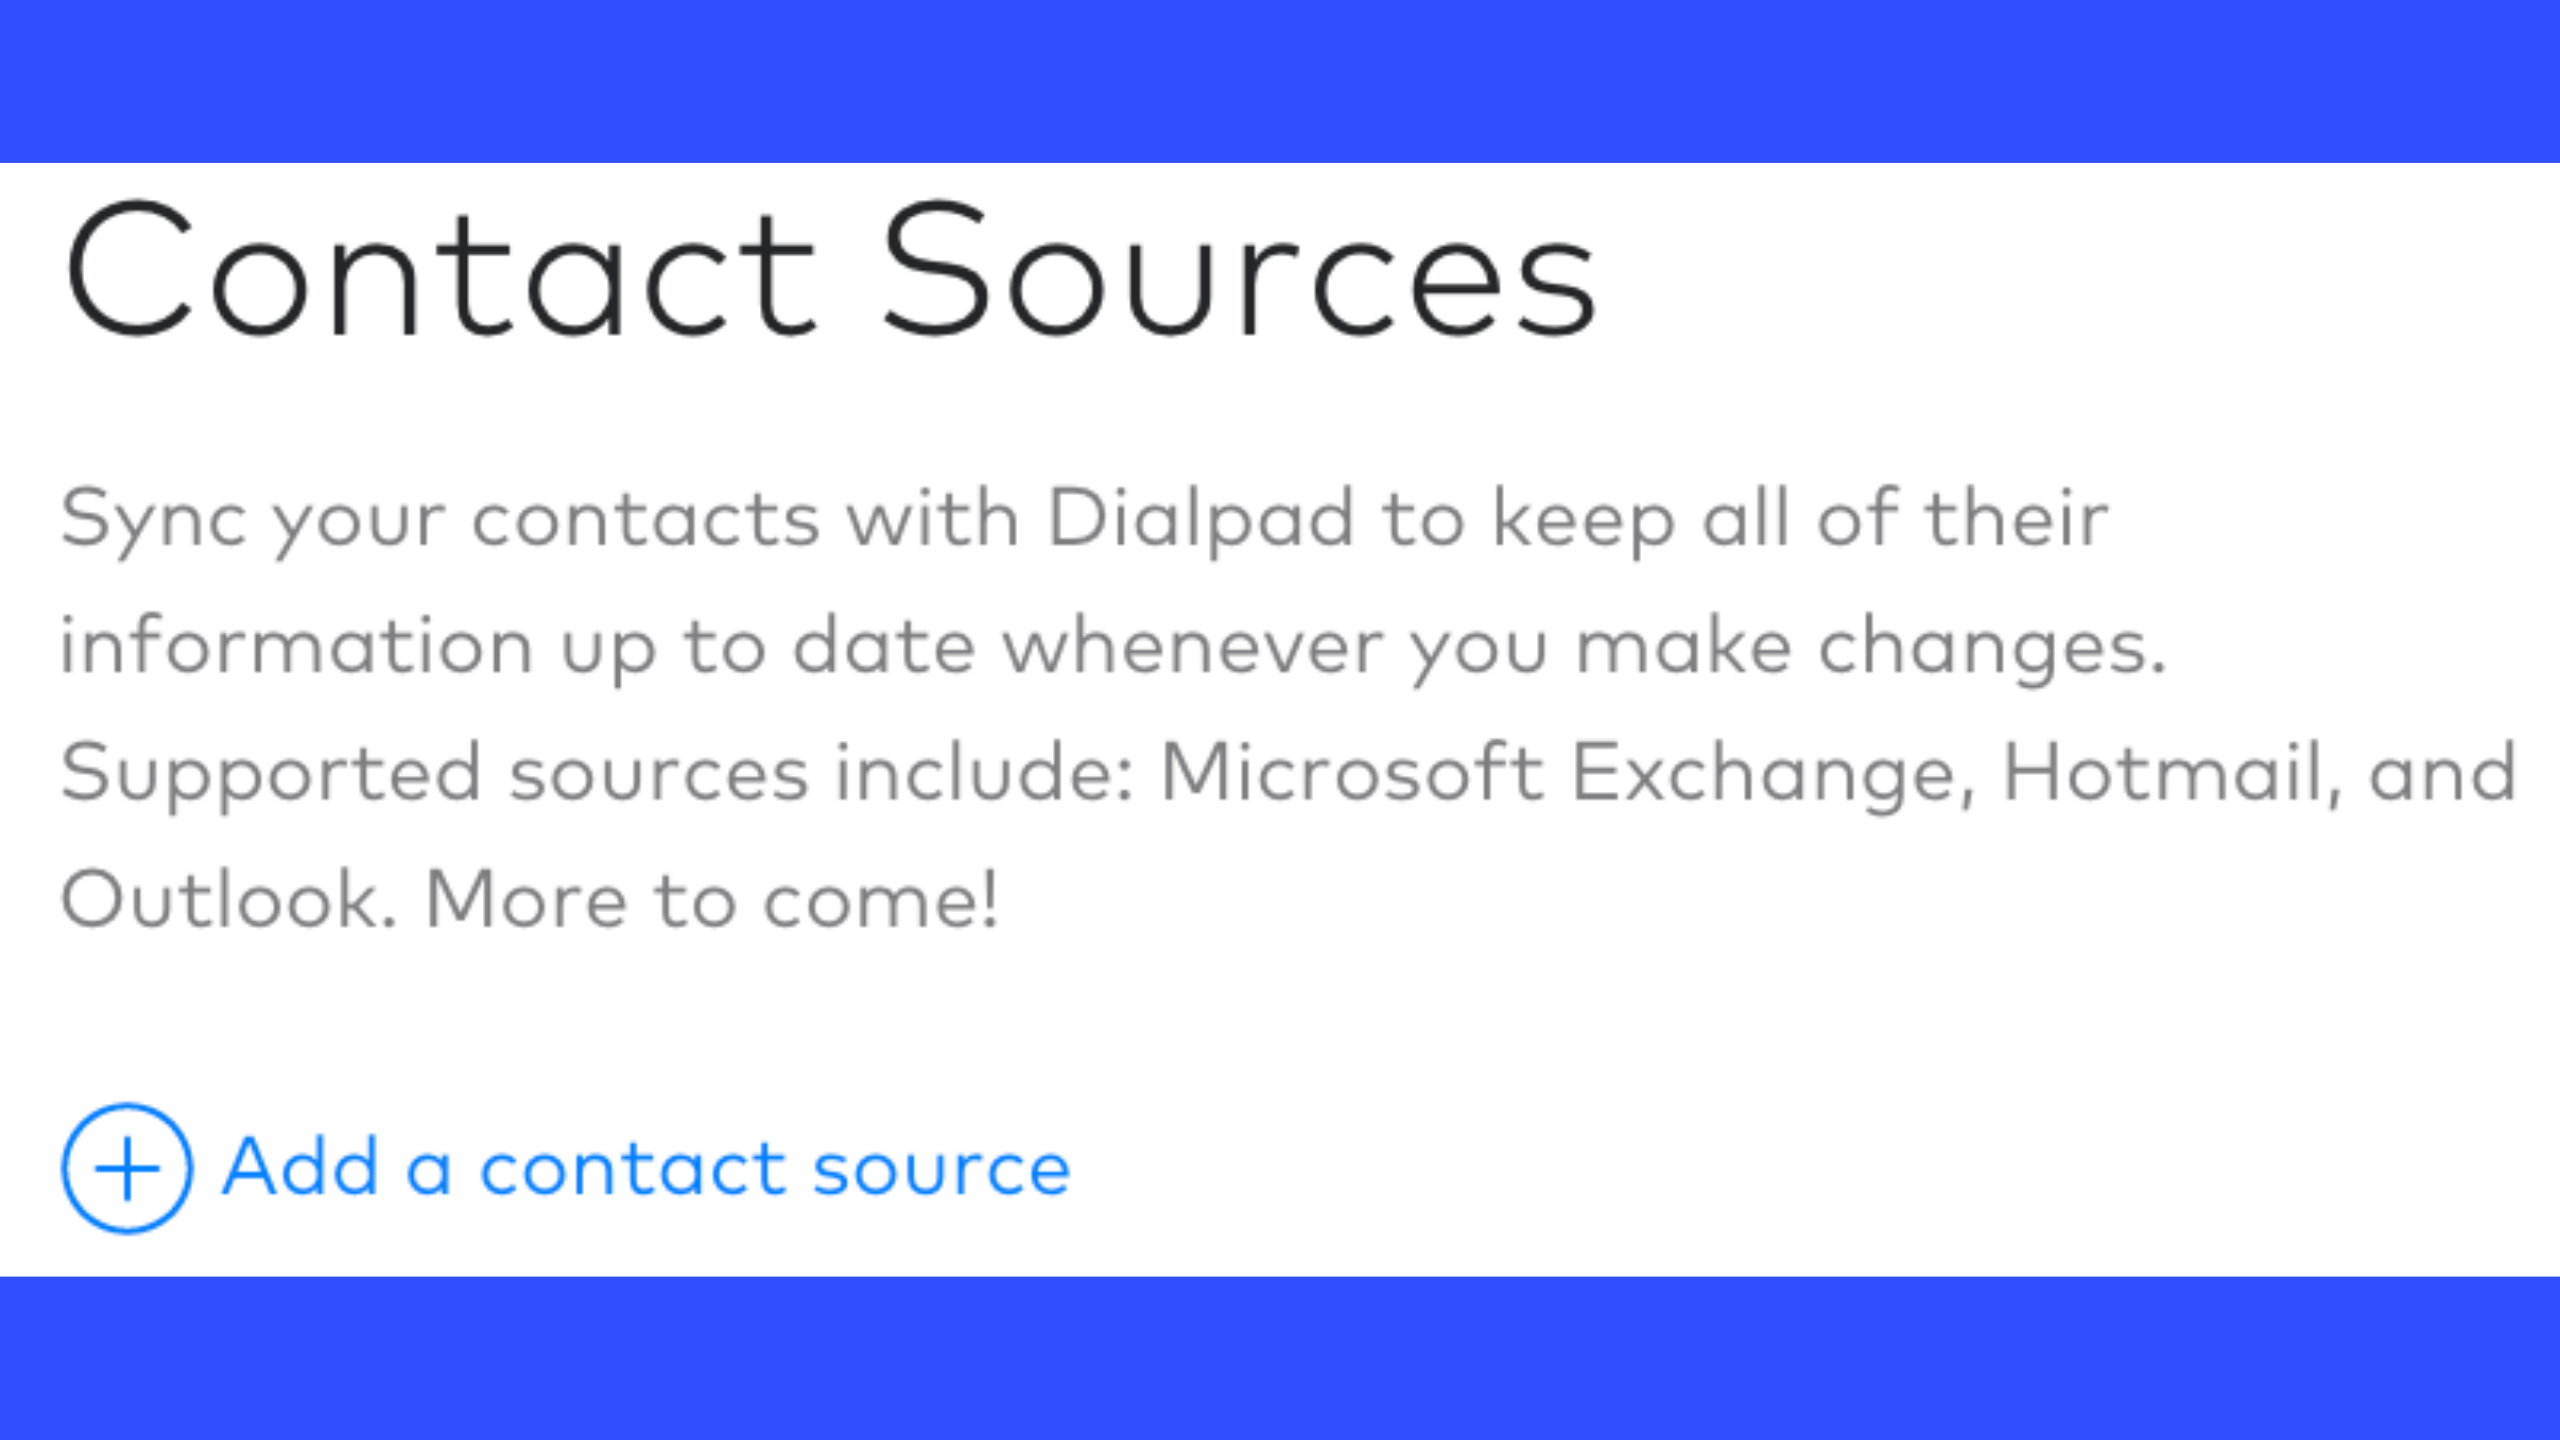 dp-profile-contact-sources.png